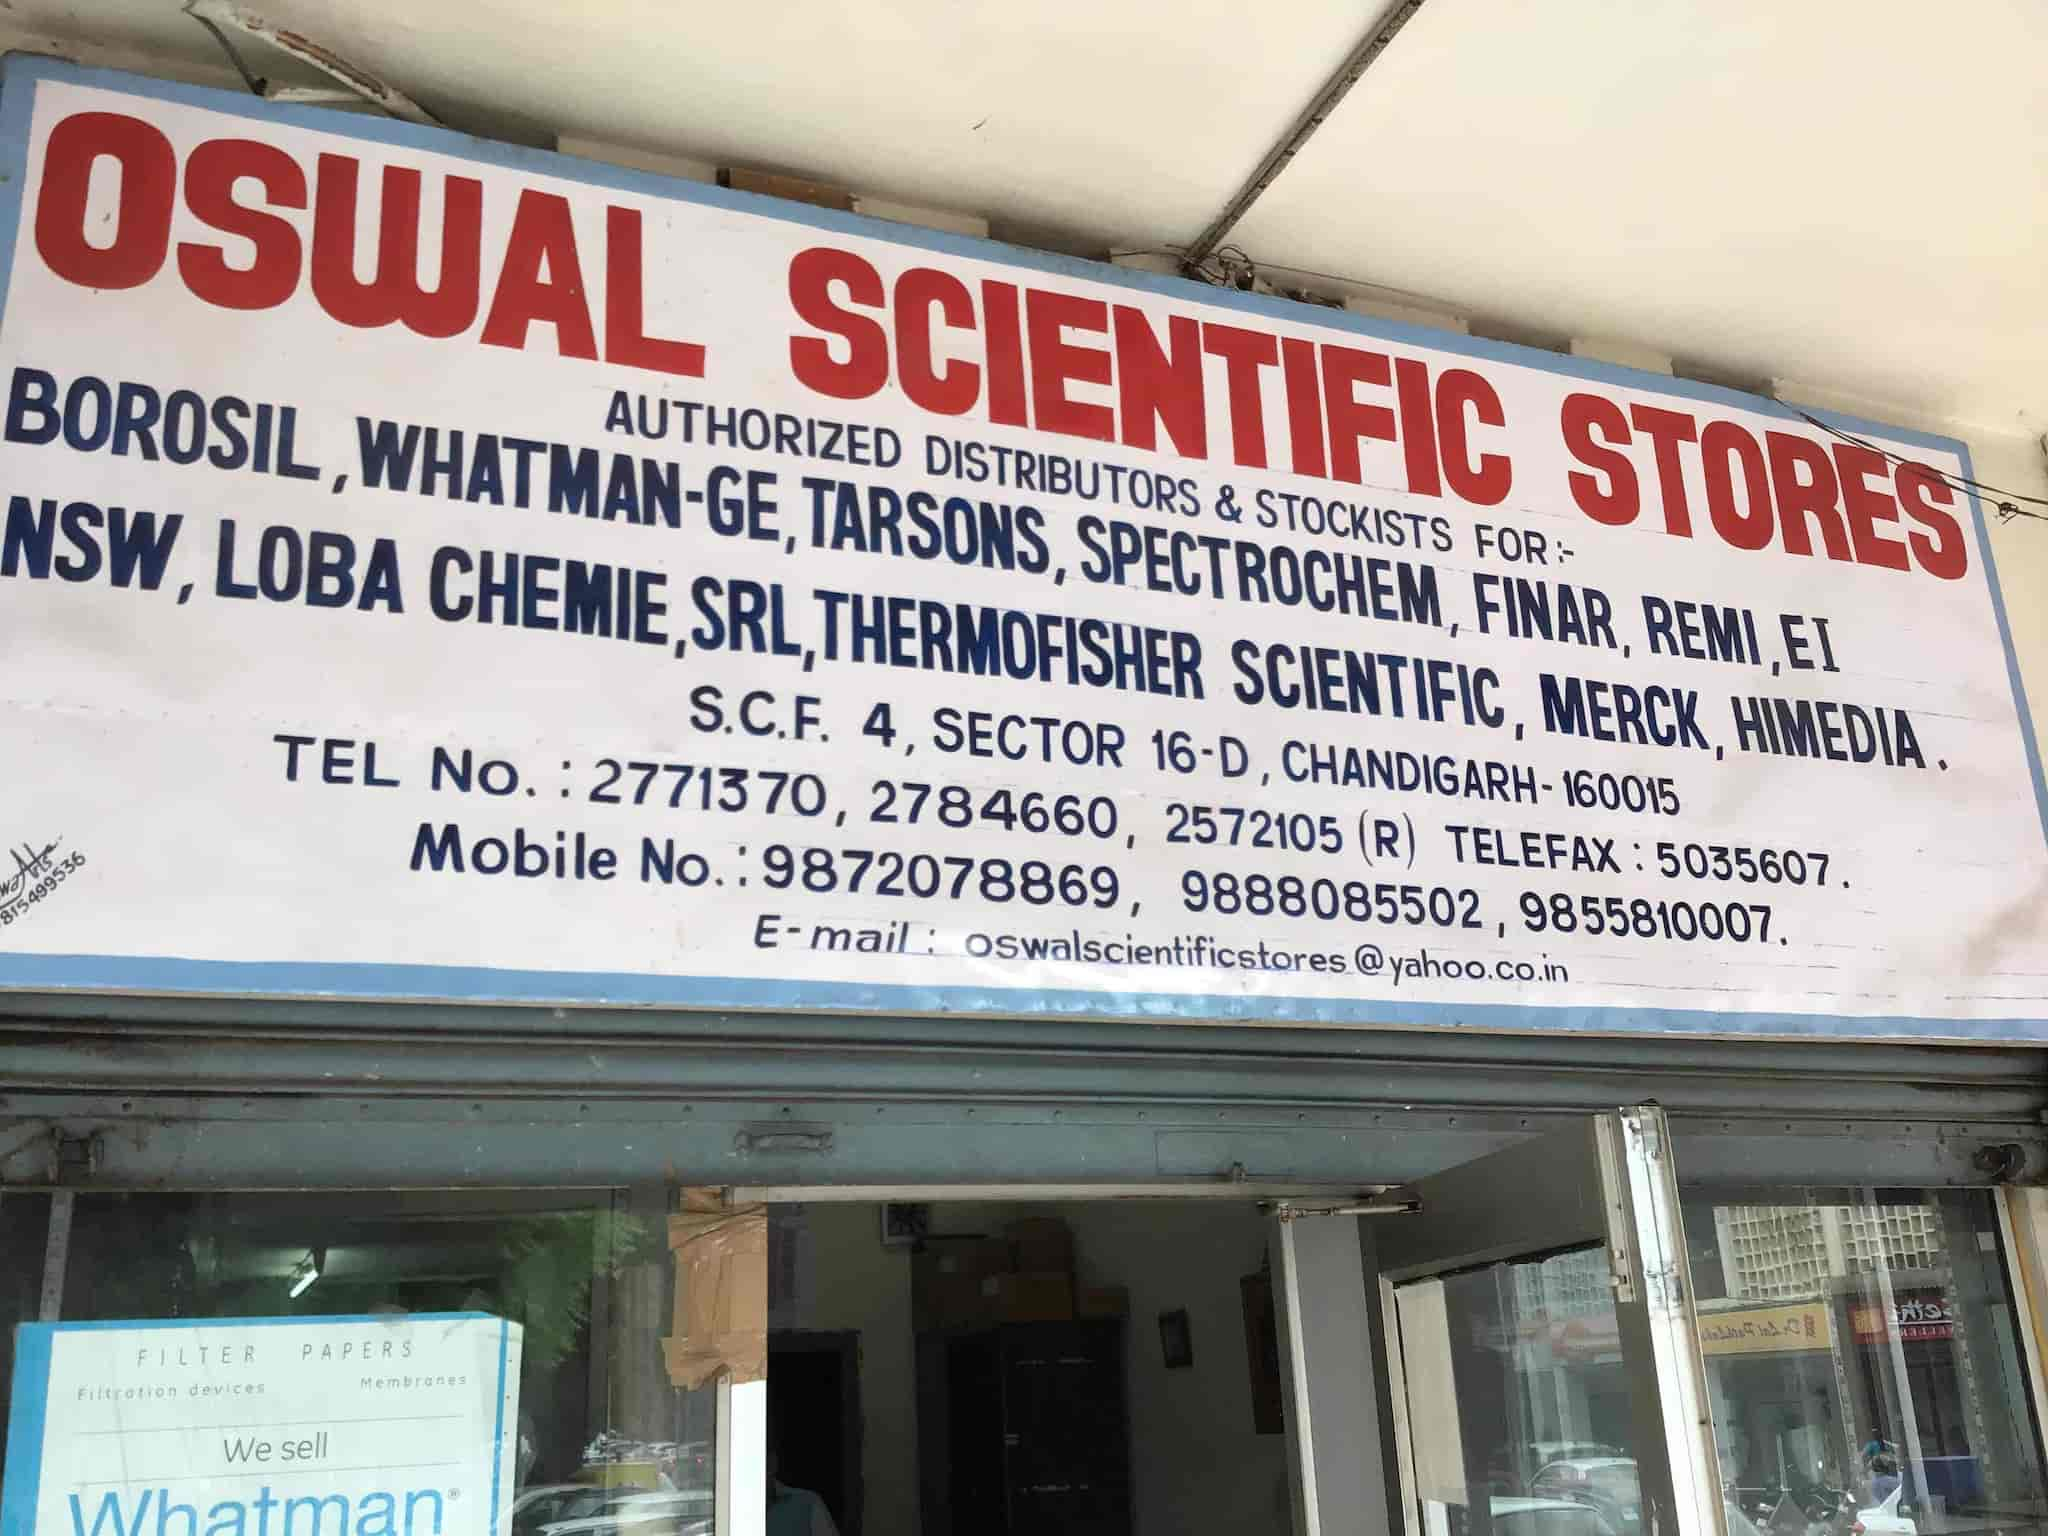 Oswal Scientific Store, Sector 16d - Medical Equipment